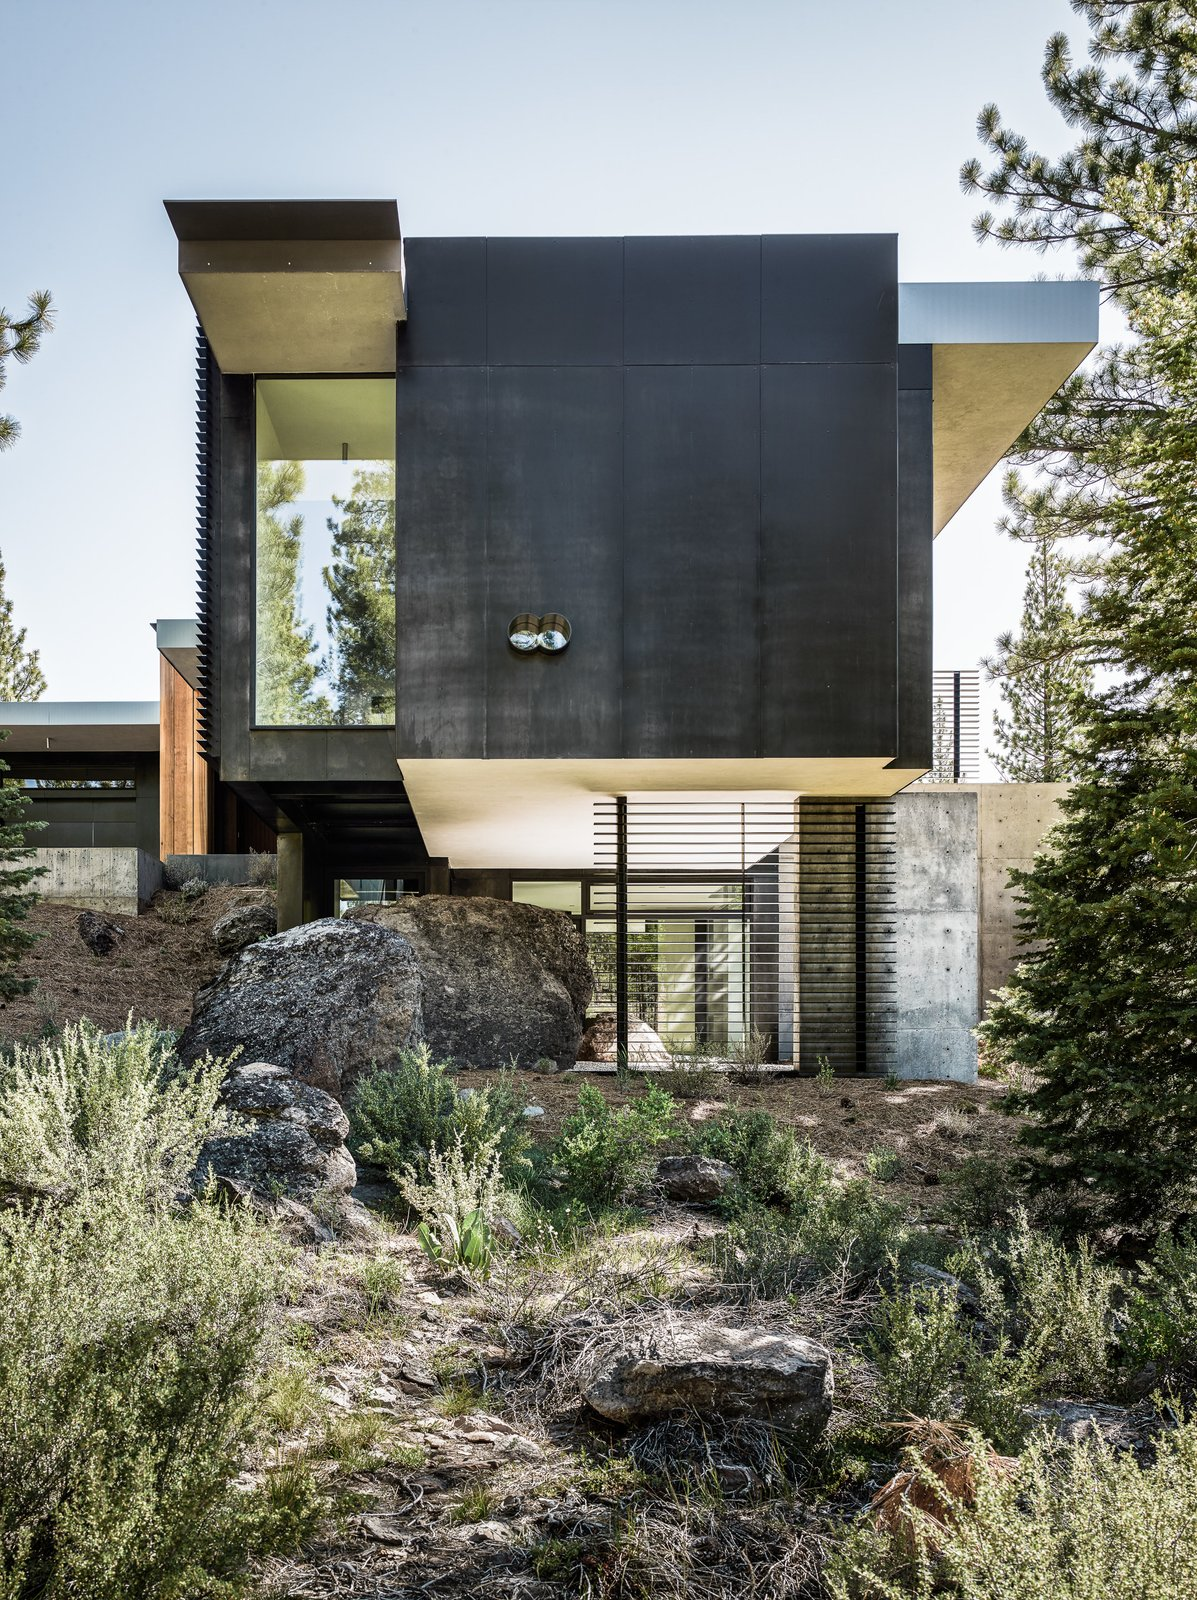 Exterior, Flat RoofLine, Concrete Siding Material, House Building Type, and Metal Siding Material Throughout the site, the original bolders that have been left untouched are evident as the home engulfs them into its design.  Photos from This Concrete Abode Stretches Over Giant Boulders